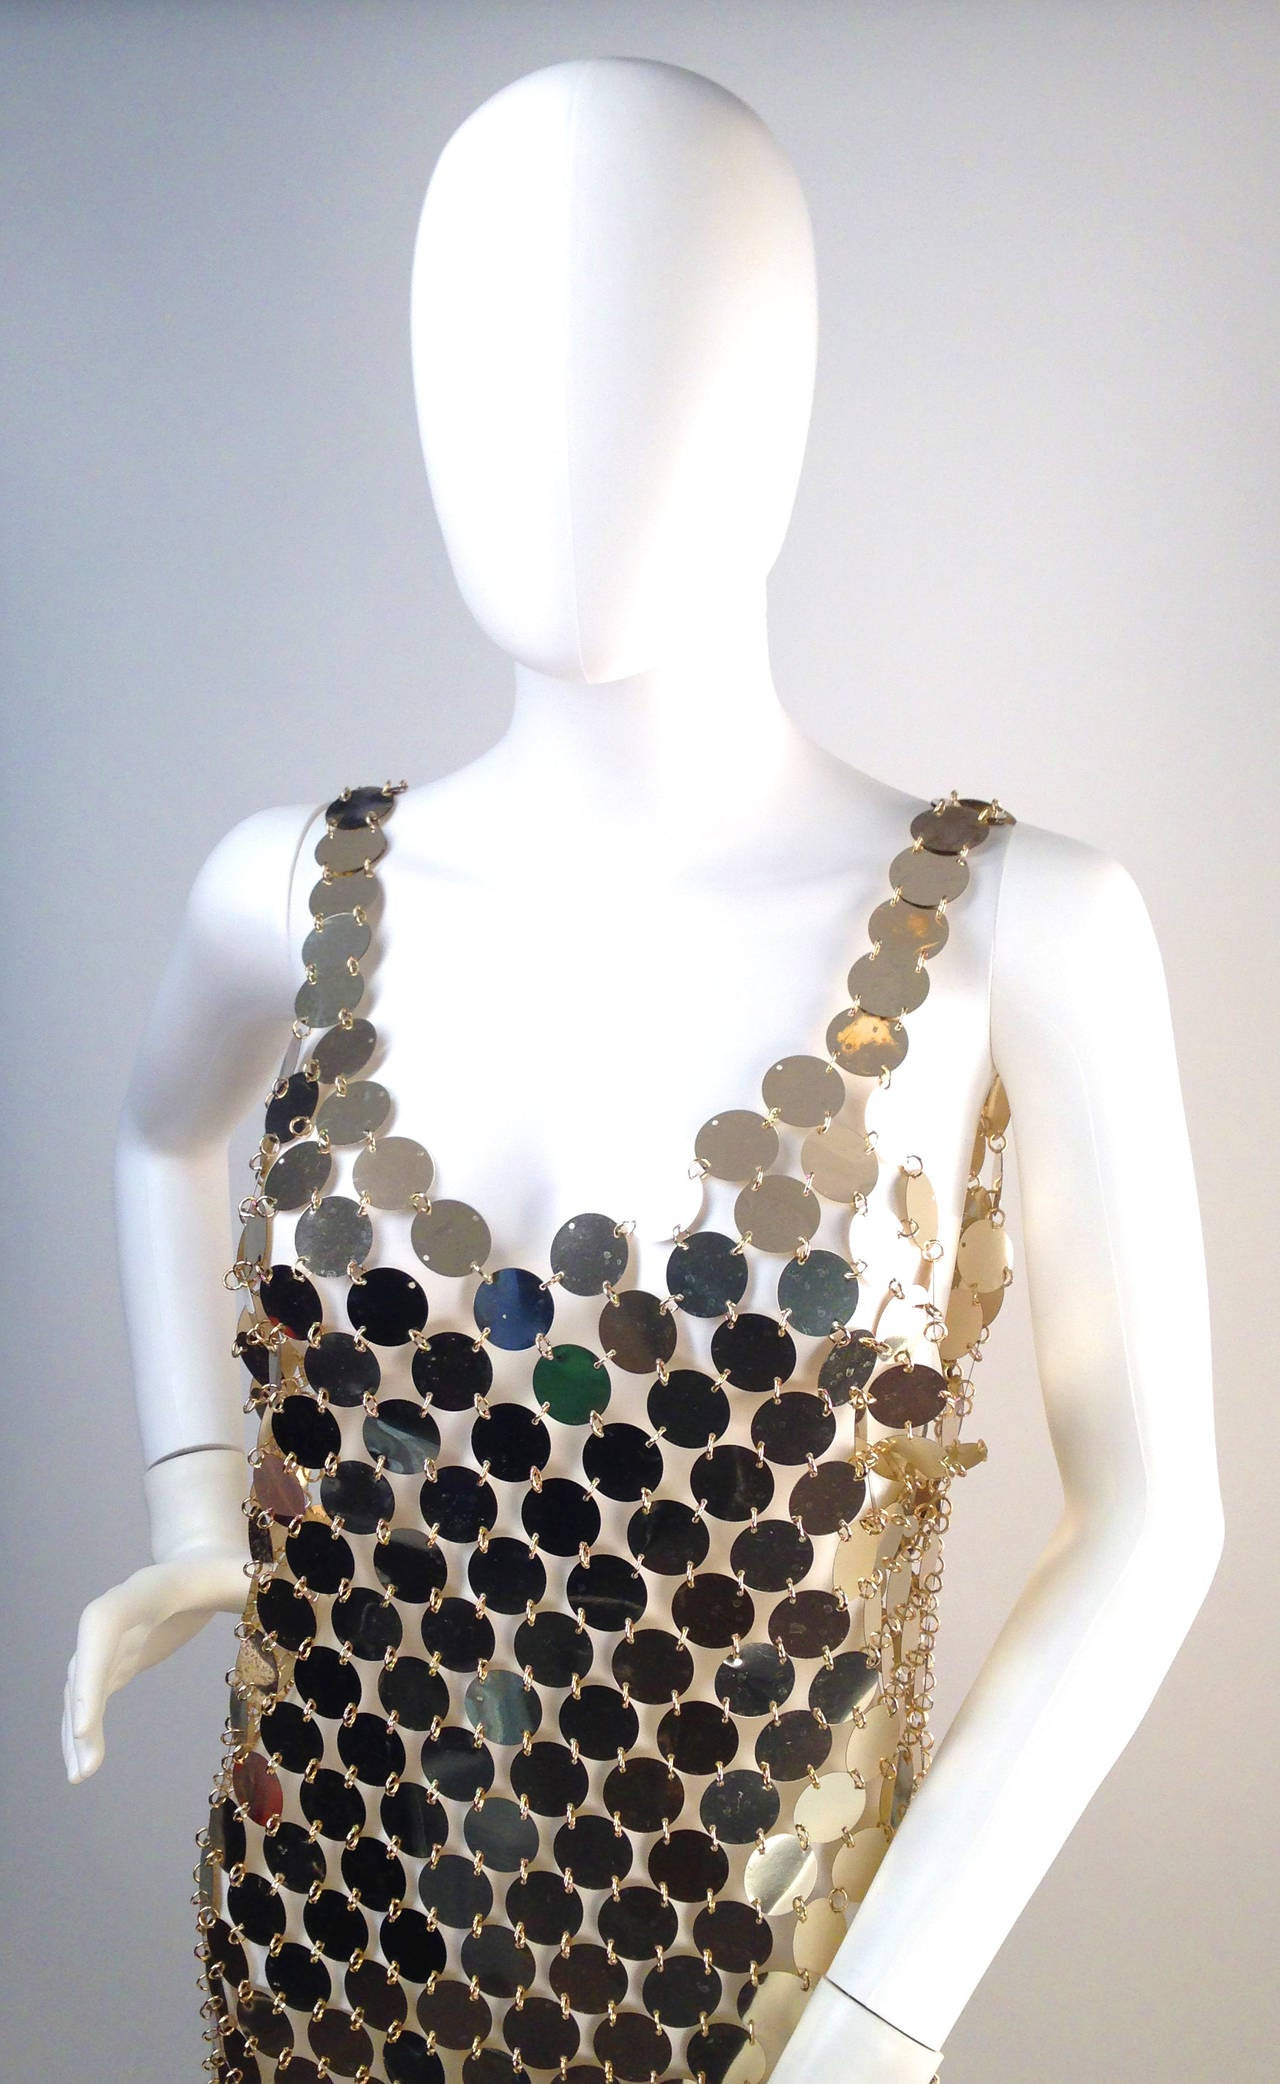 1990s PACO RABANNE Mod Plastic Disc Dress 2